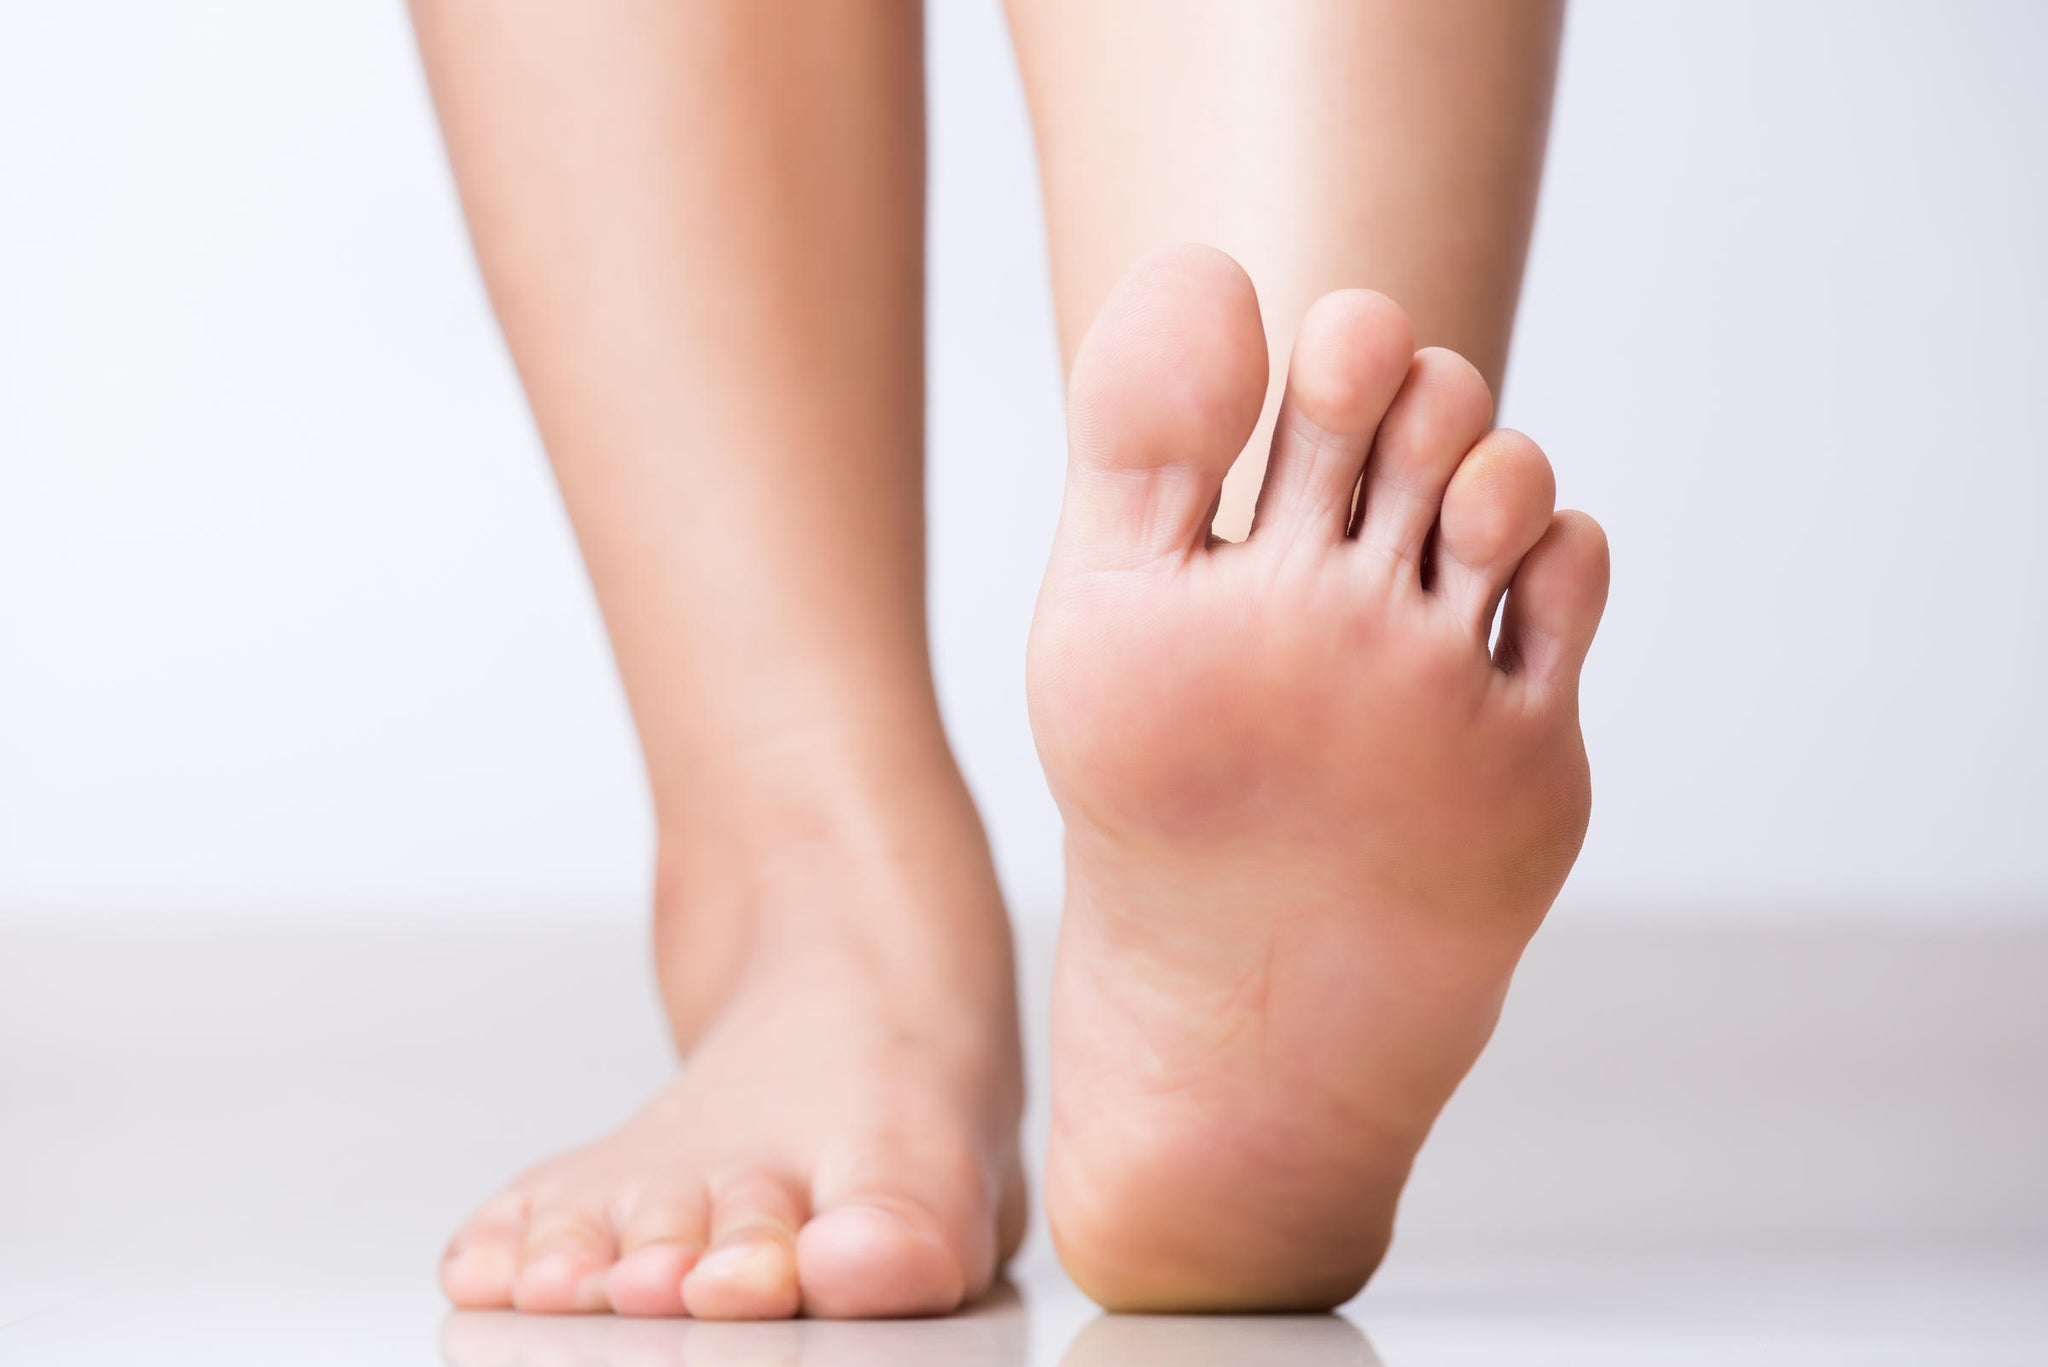 8 Signs You 100% Have a Foot Fetish